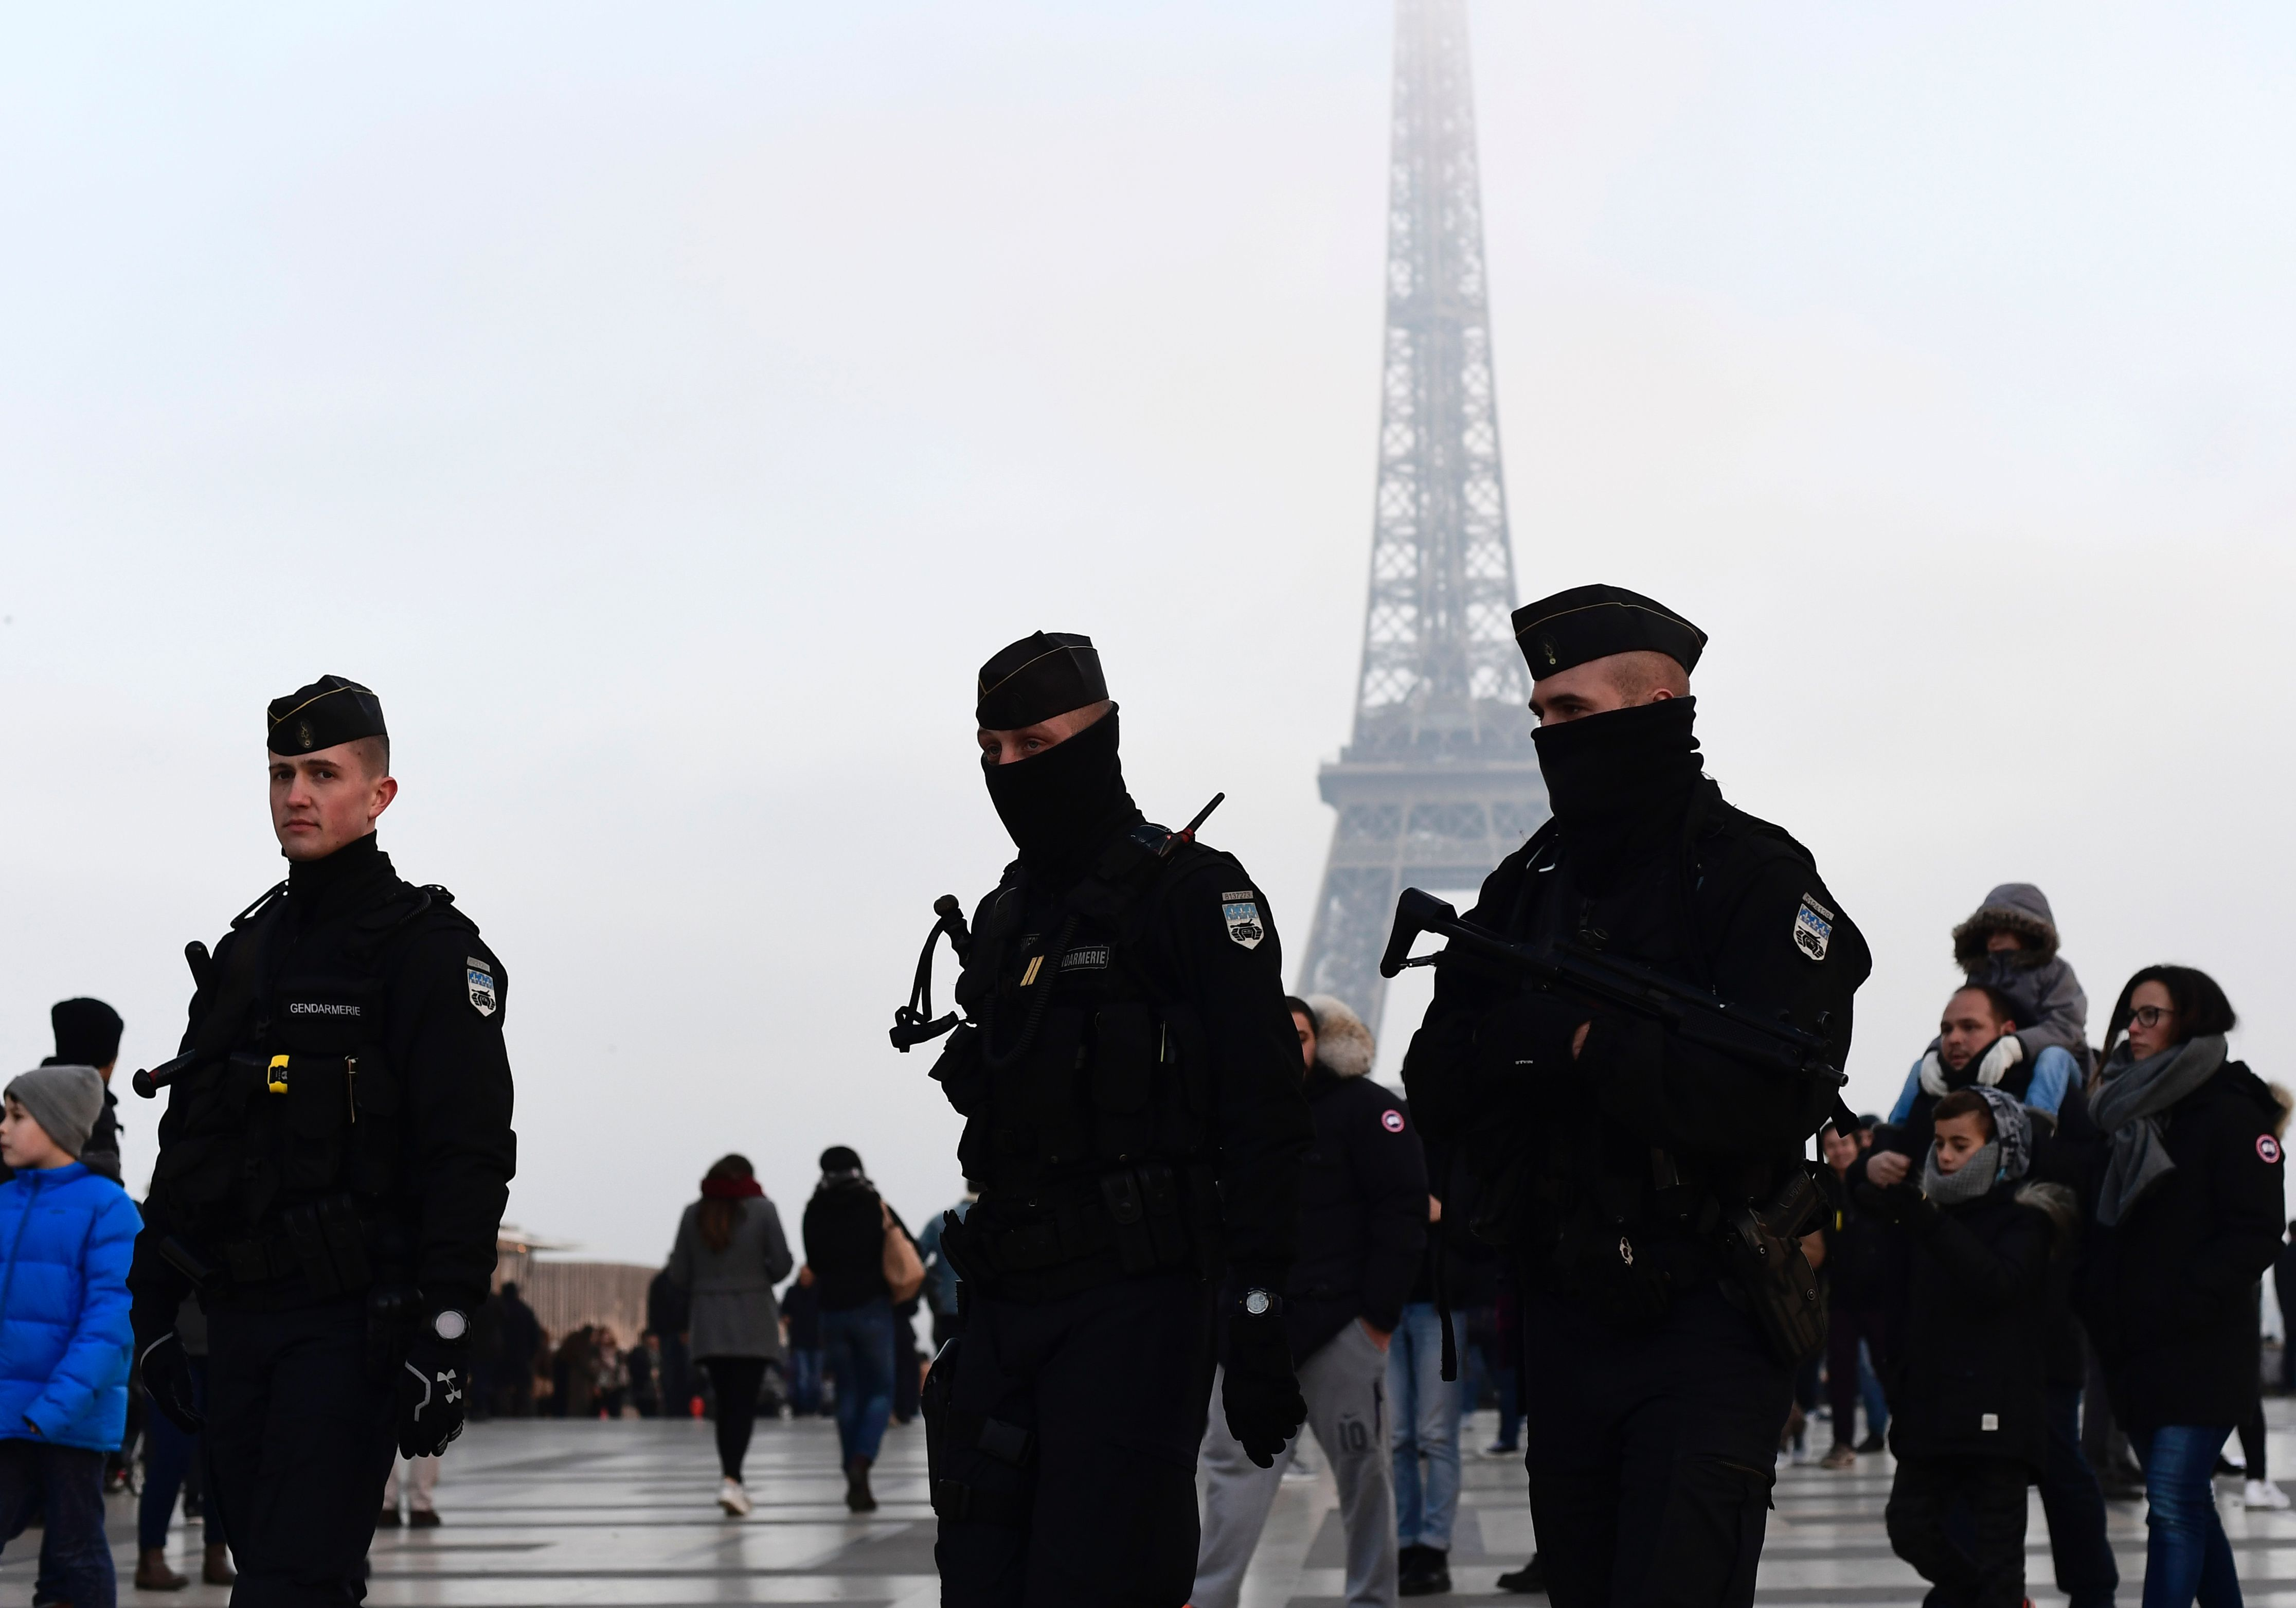 French gendarmes patrol in front of the Eiffel Tower in Paris on Dec. 30, 2016